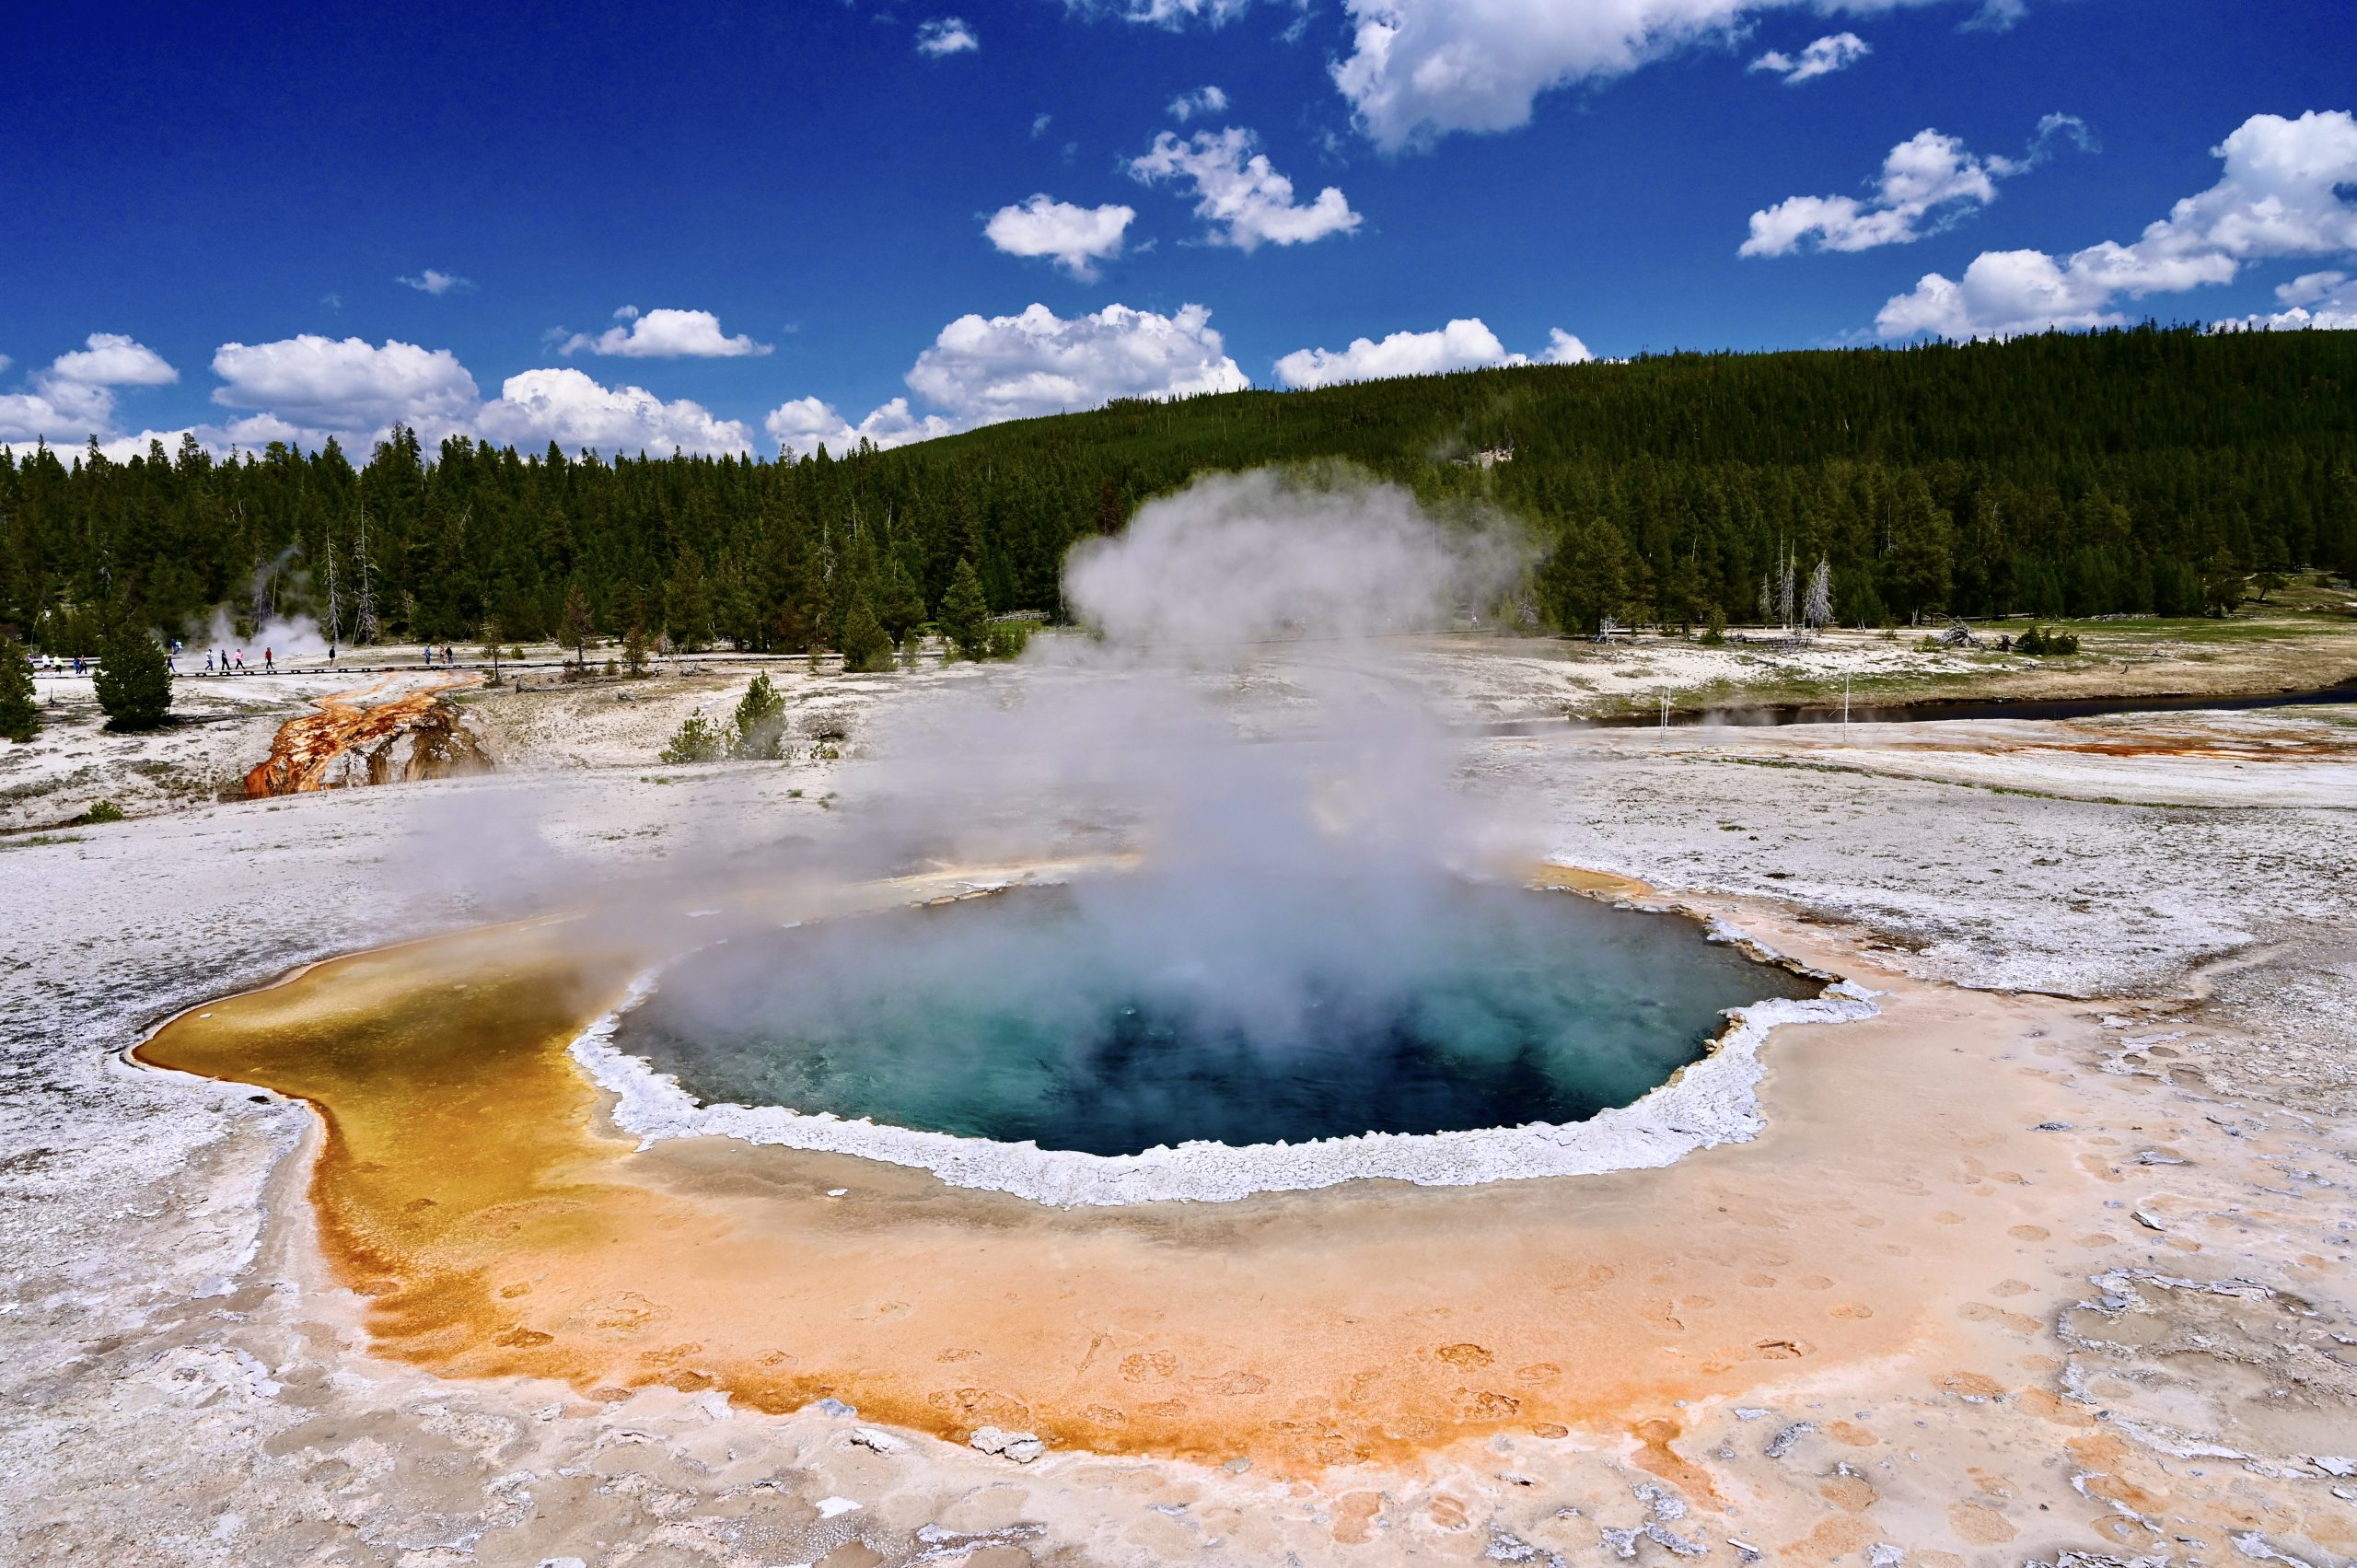 Crescent Pool is just one of many geothermal features in the Upper Geyser Basin near Old Faithful